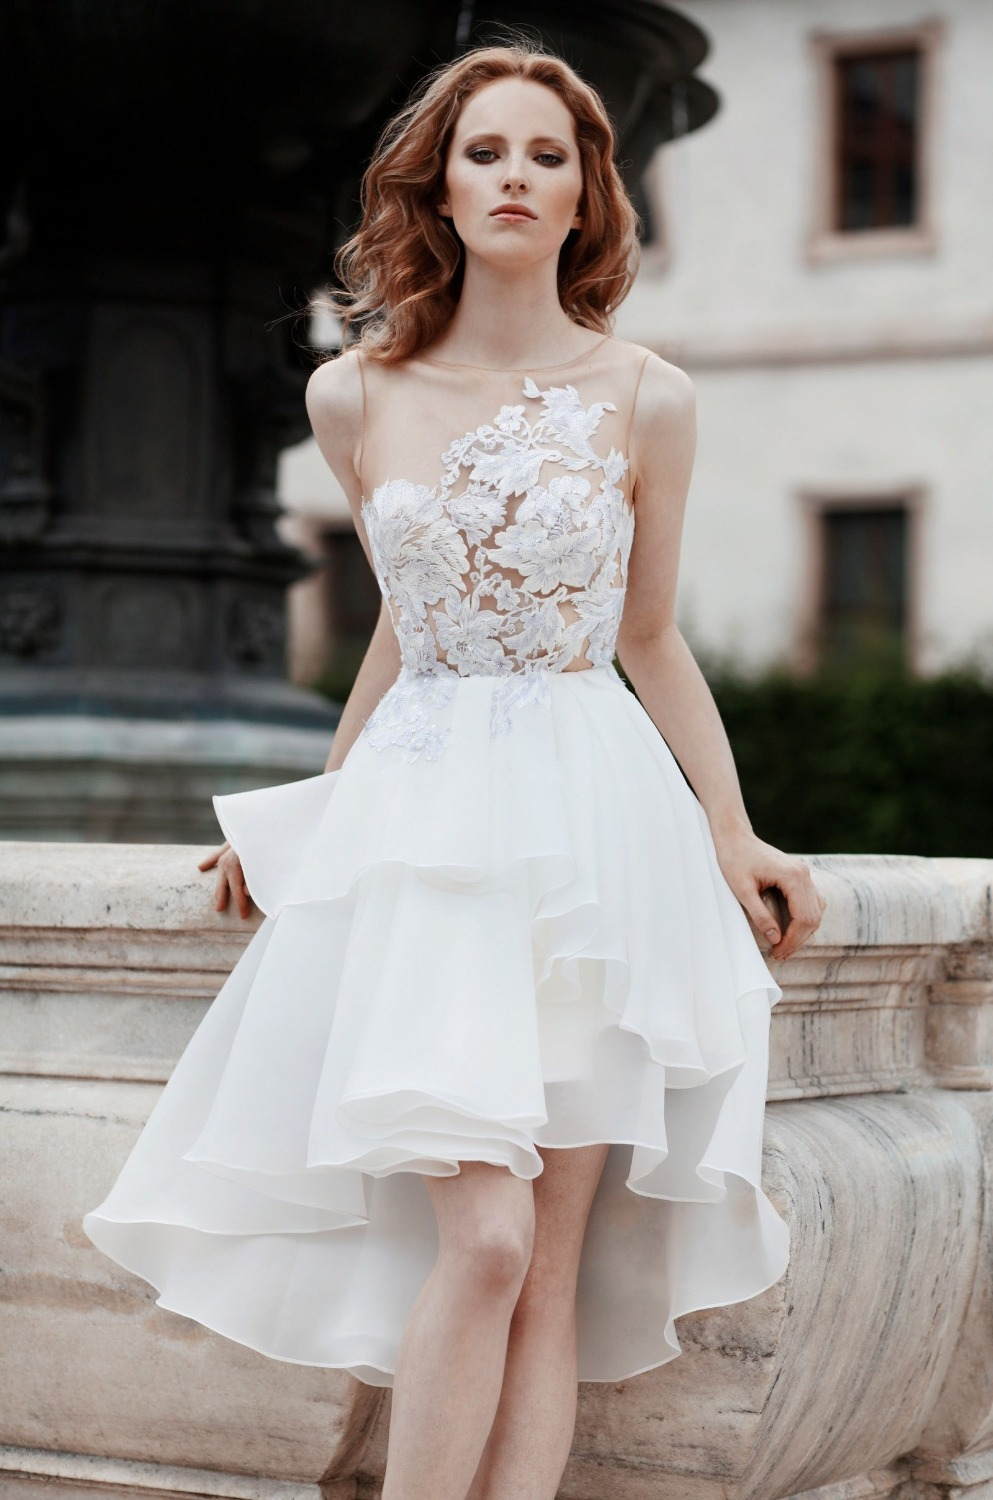 Short Tail Dress 2017 New White Organza Knee Length Party Prom Gowns In Dresses From Weddings Events On Aliexpress Alibaba Group